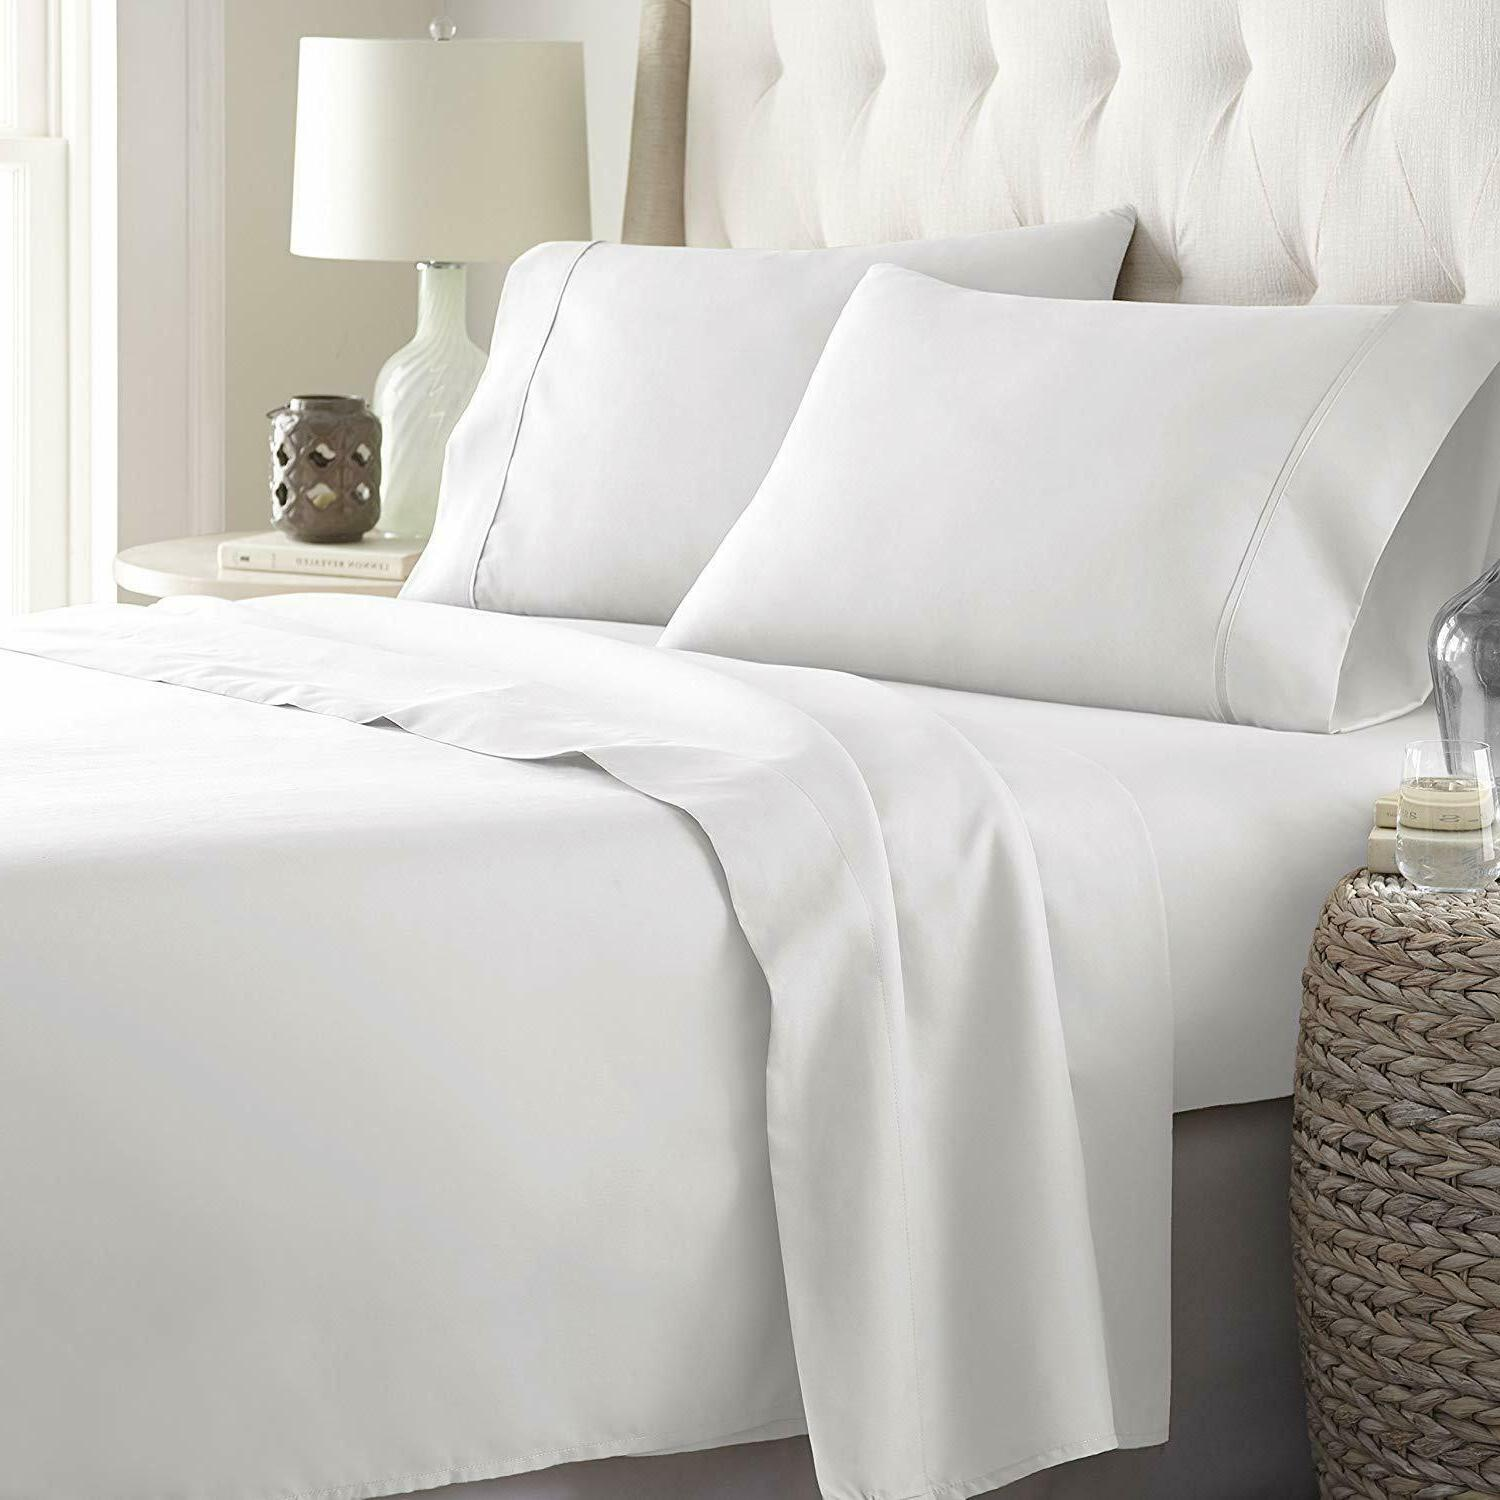 Bed Sheets Set hotel luxury 1800 count 4 piece set deep pock